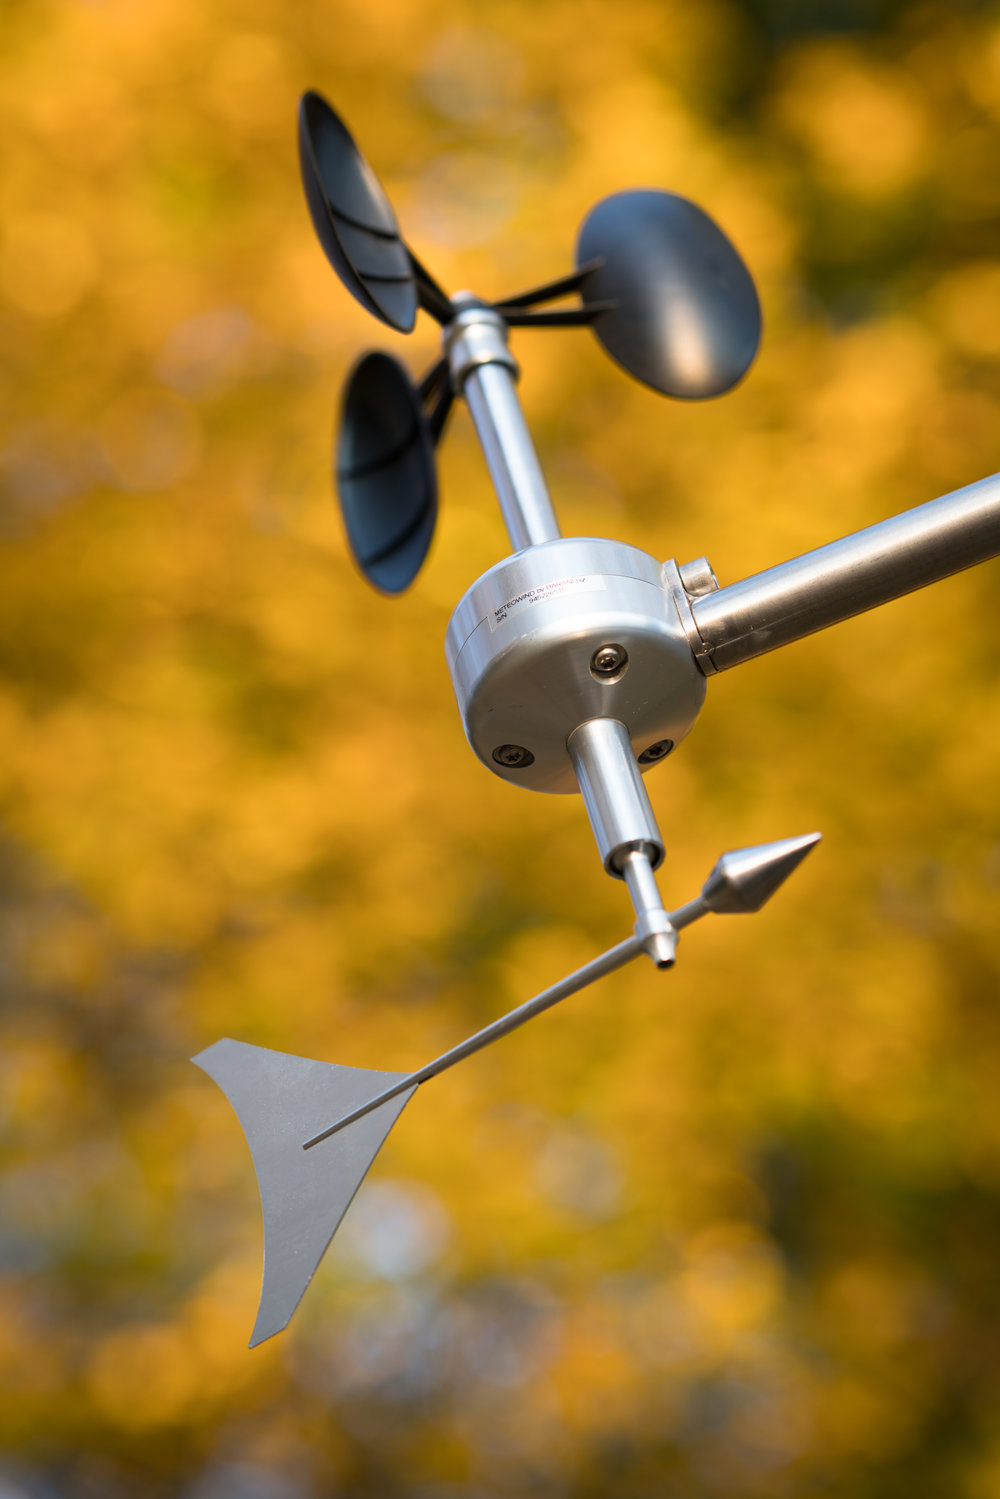 MeteoWind 1 anemometer with wind vane with fall leafs background